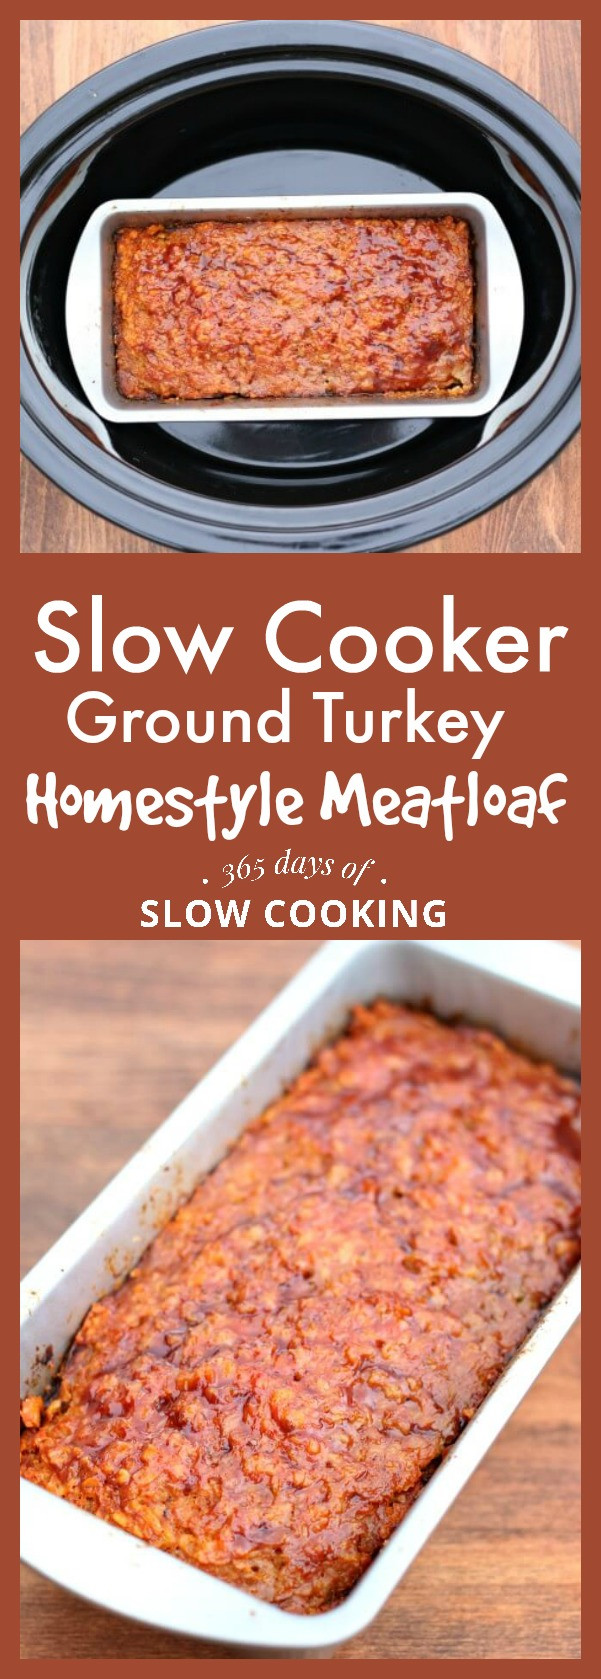 Slow Cooker Ground Turkey Recipes Healthy  Slow Cooker Homestyle Ground Turkey or Beef Meatloaf